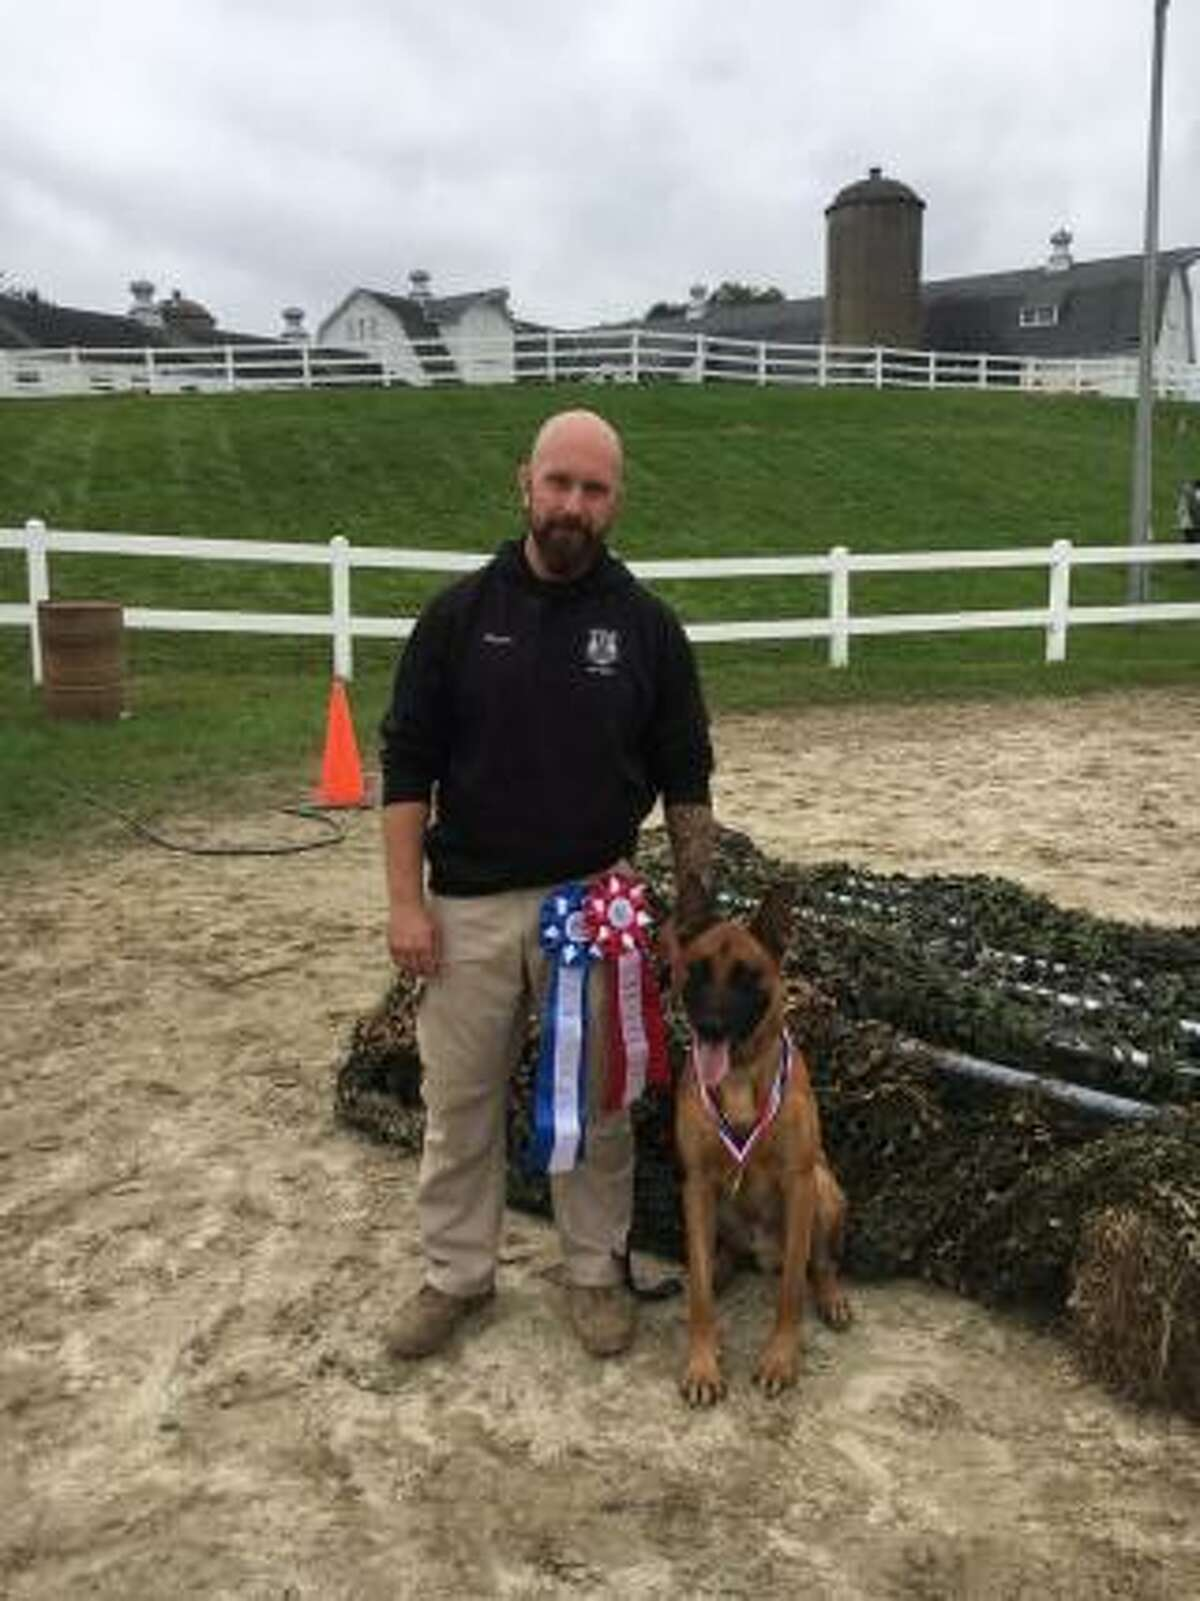 Stamford police officer Logan Pavia and his K-9 Pyro responded to a burglary on Thursday, Sept. 20 on Davenport Drive, Stamford, Conn.